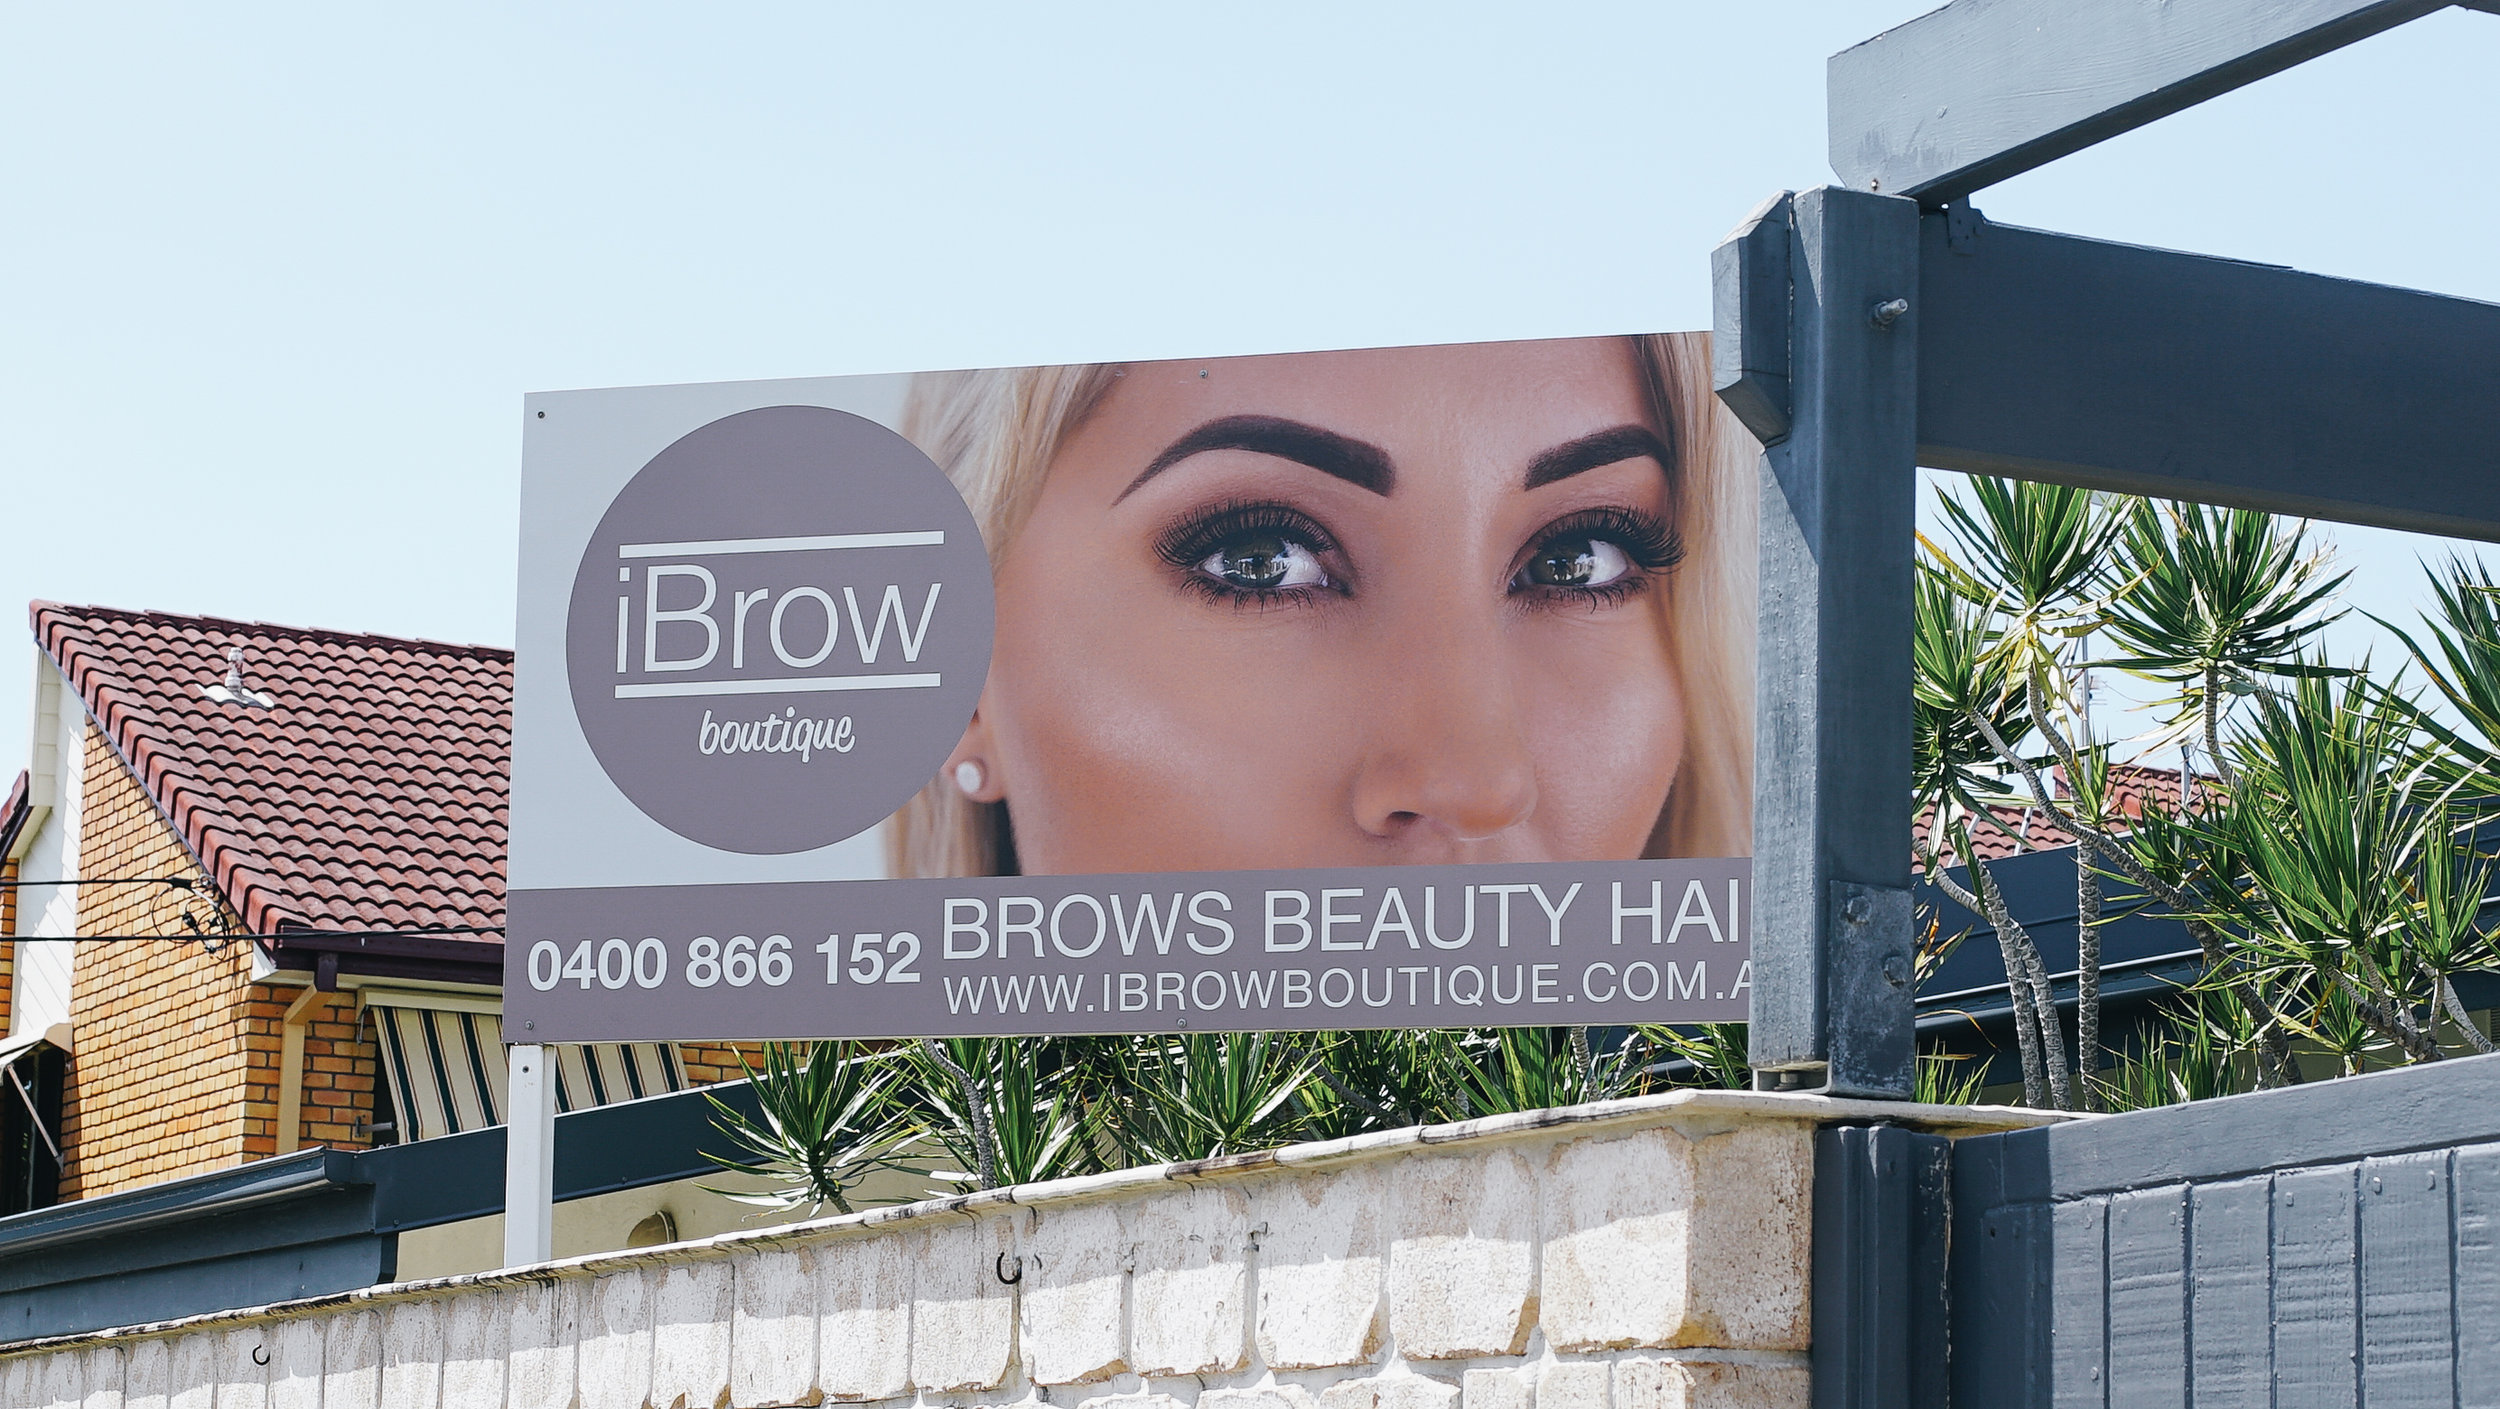 ibrow images (182 of 213).jpg